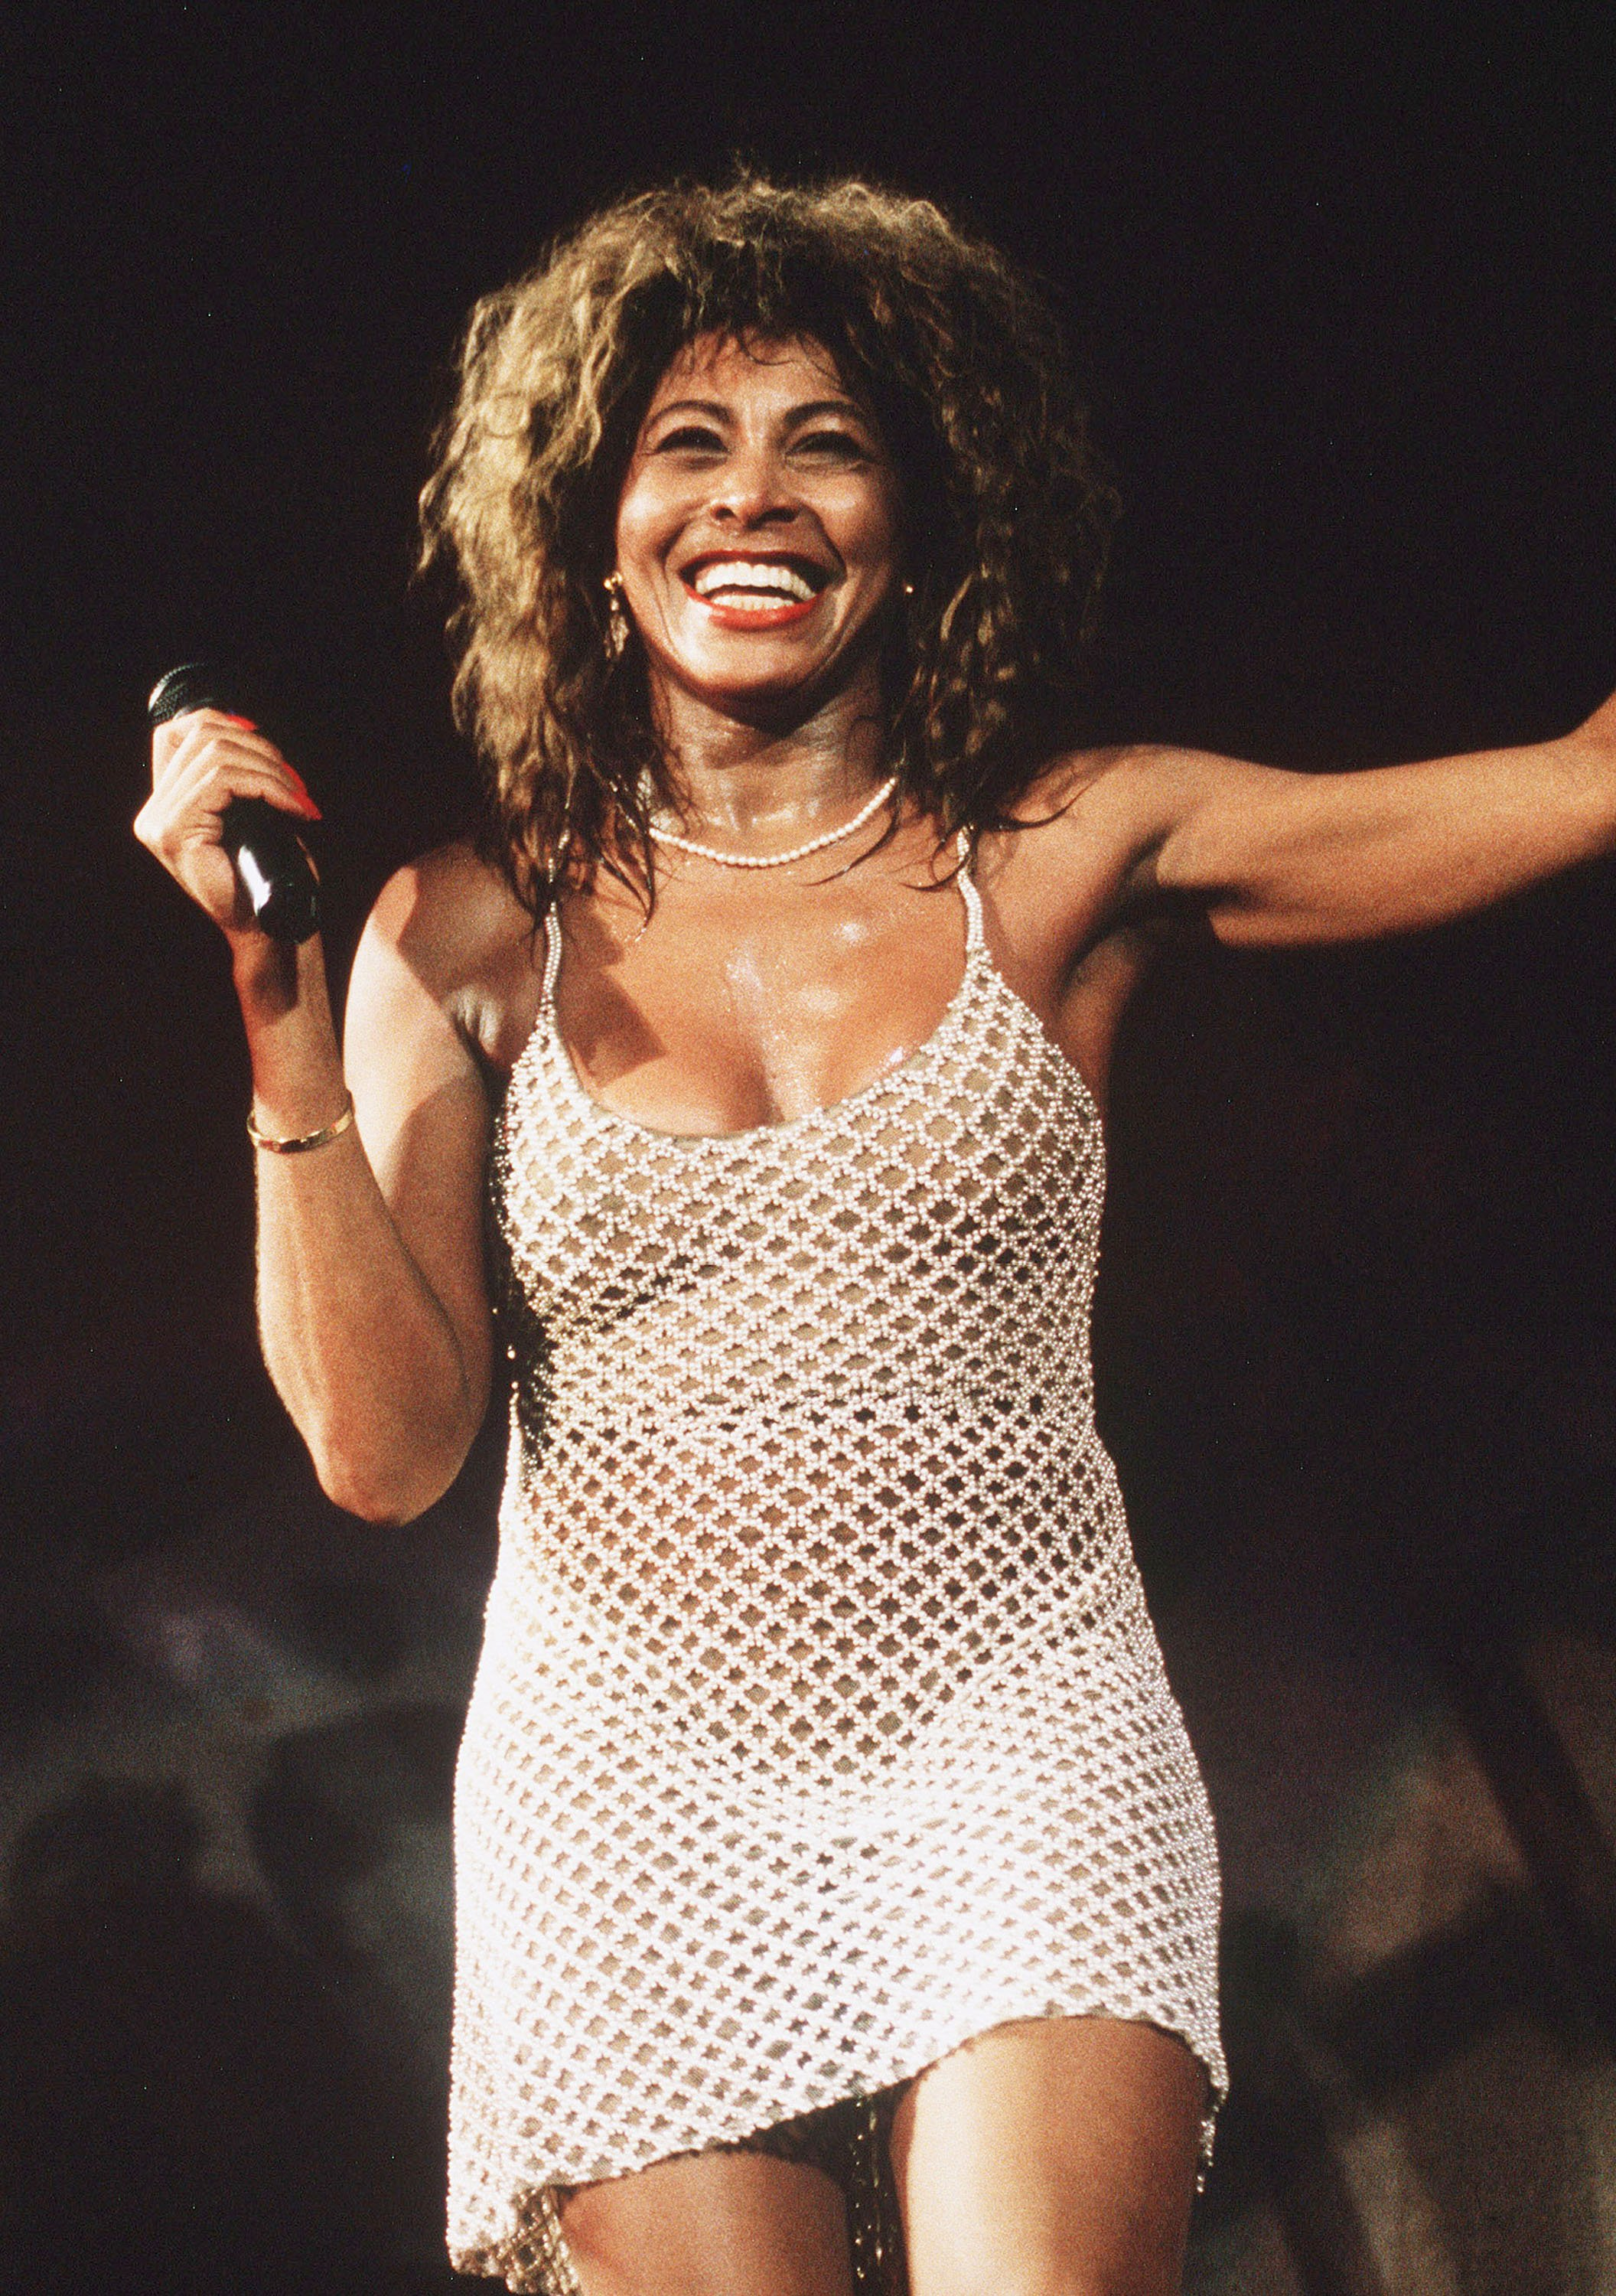 Singer Tina Turner performs live on stage at Wembley Stadium, in 1990. | Source: Getty Images